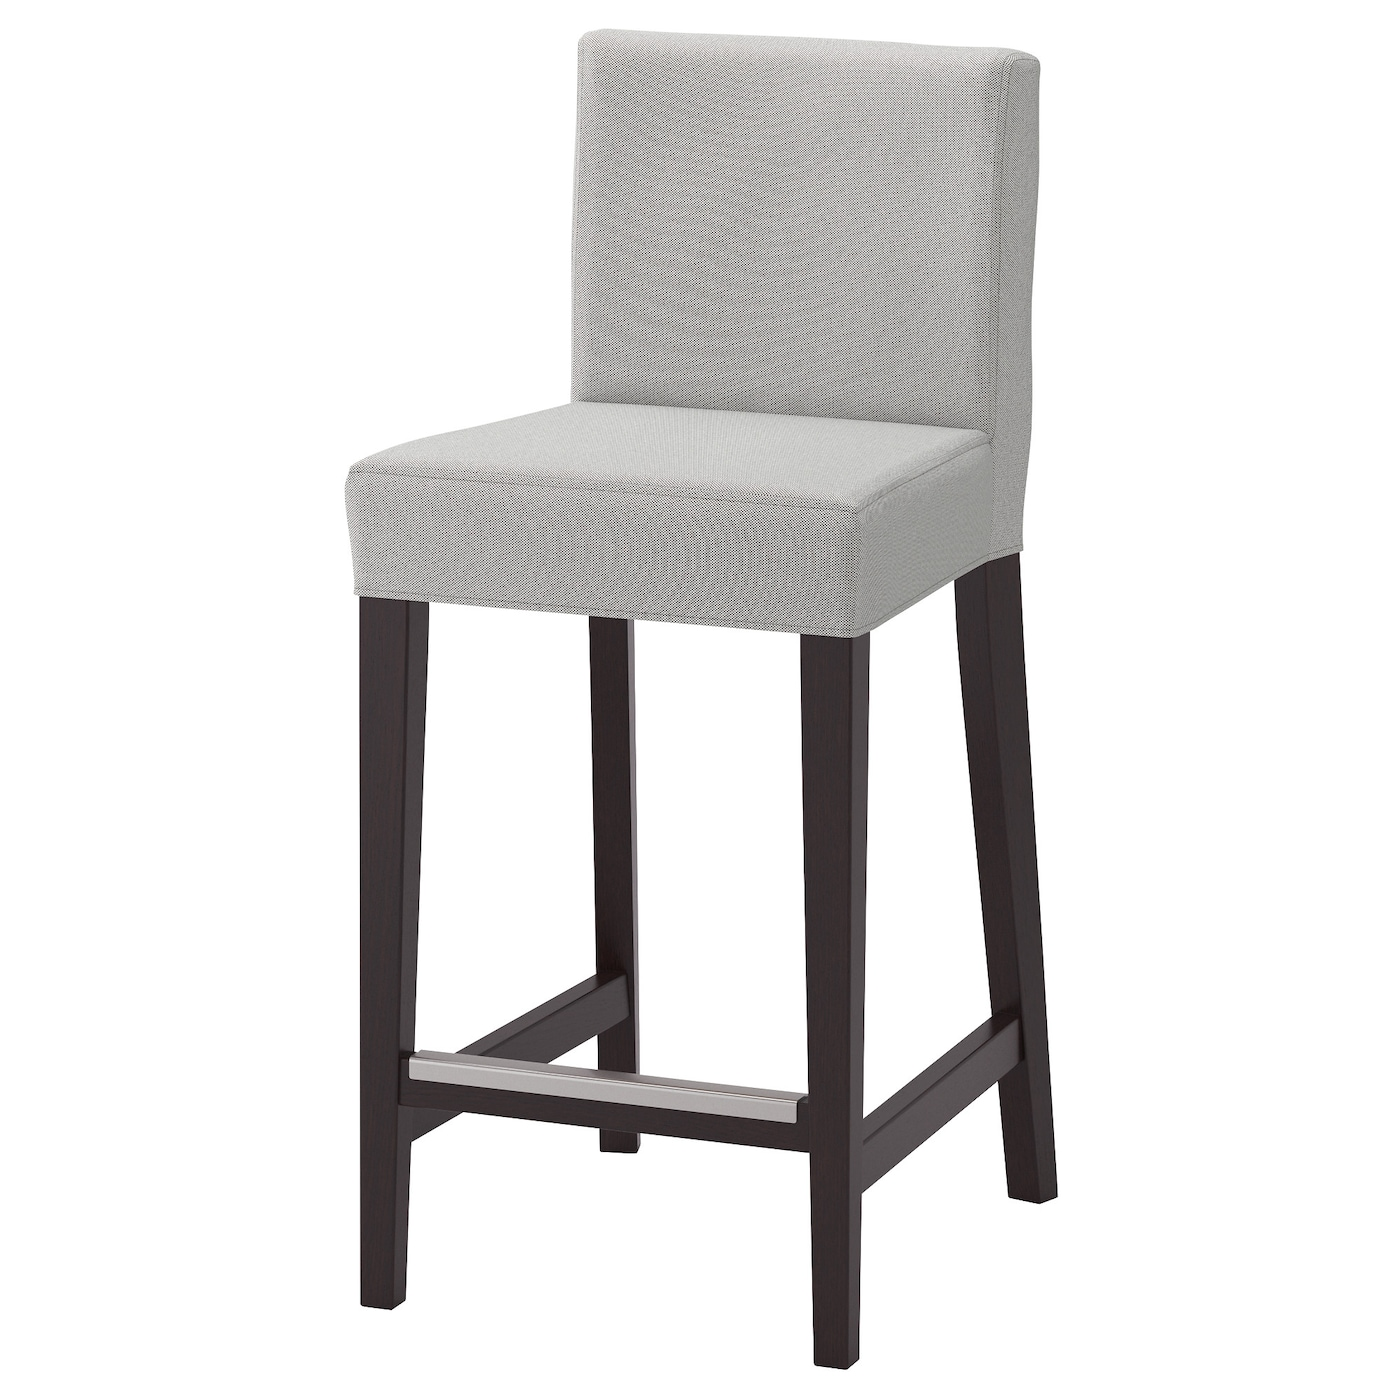 henriksdal tabouret de bar dossier brun noir orrsta gris clair 63 cm ikea. Black Bedroom Furniture Sets. Home Design Ideas